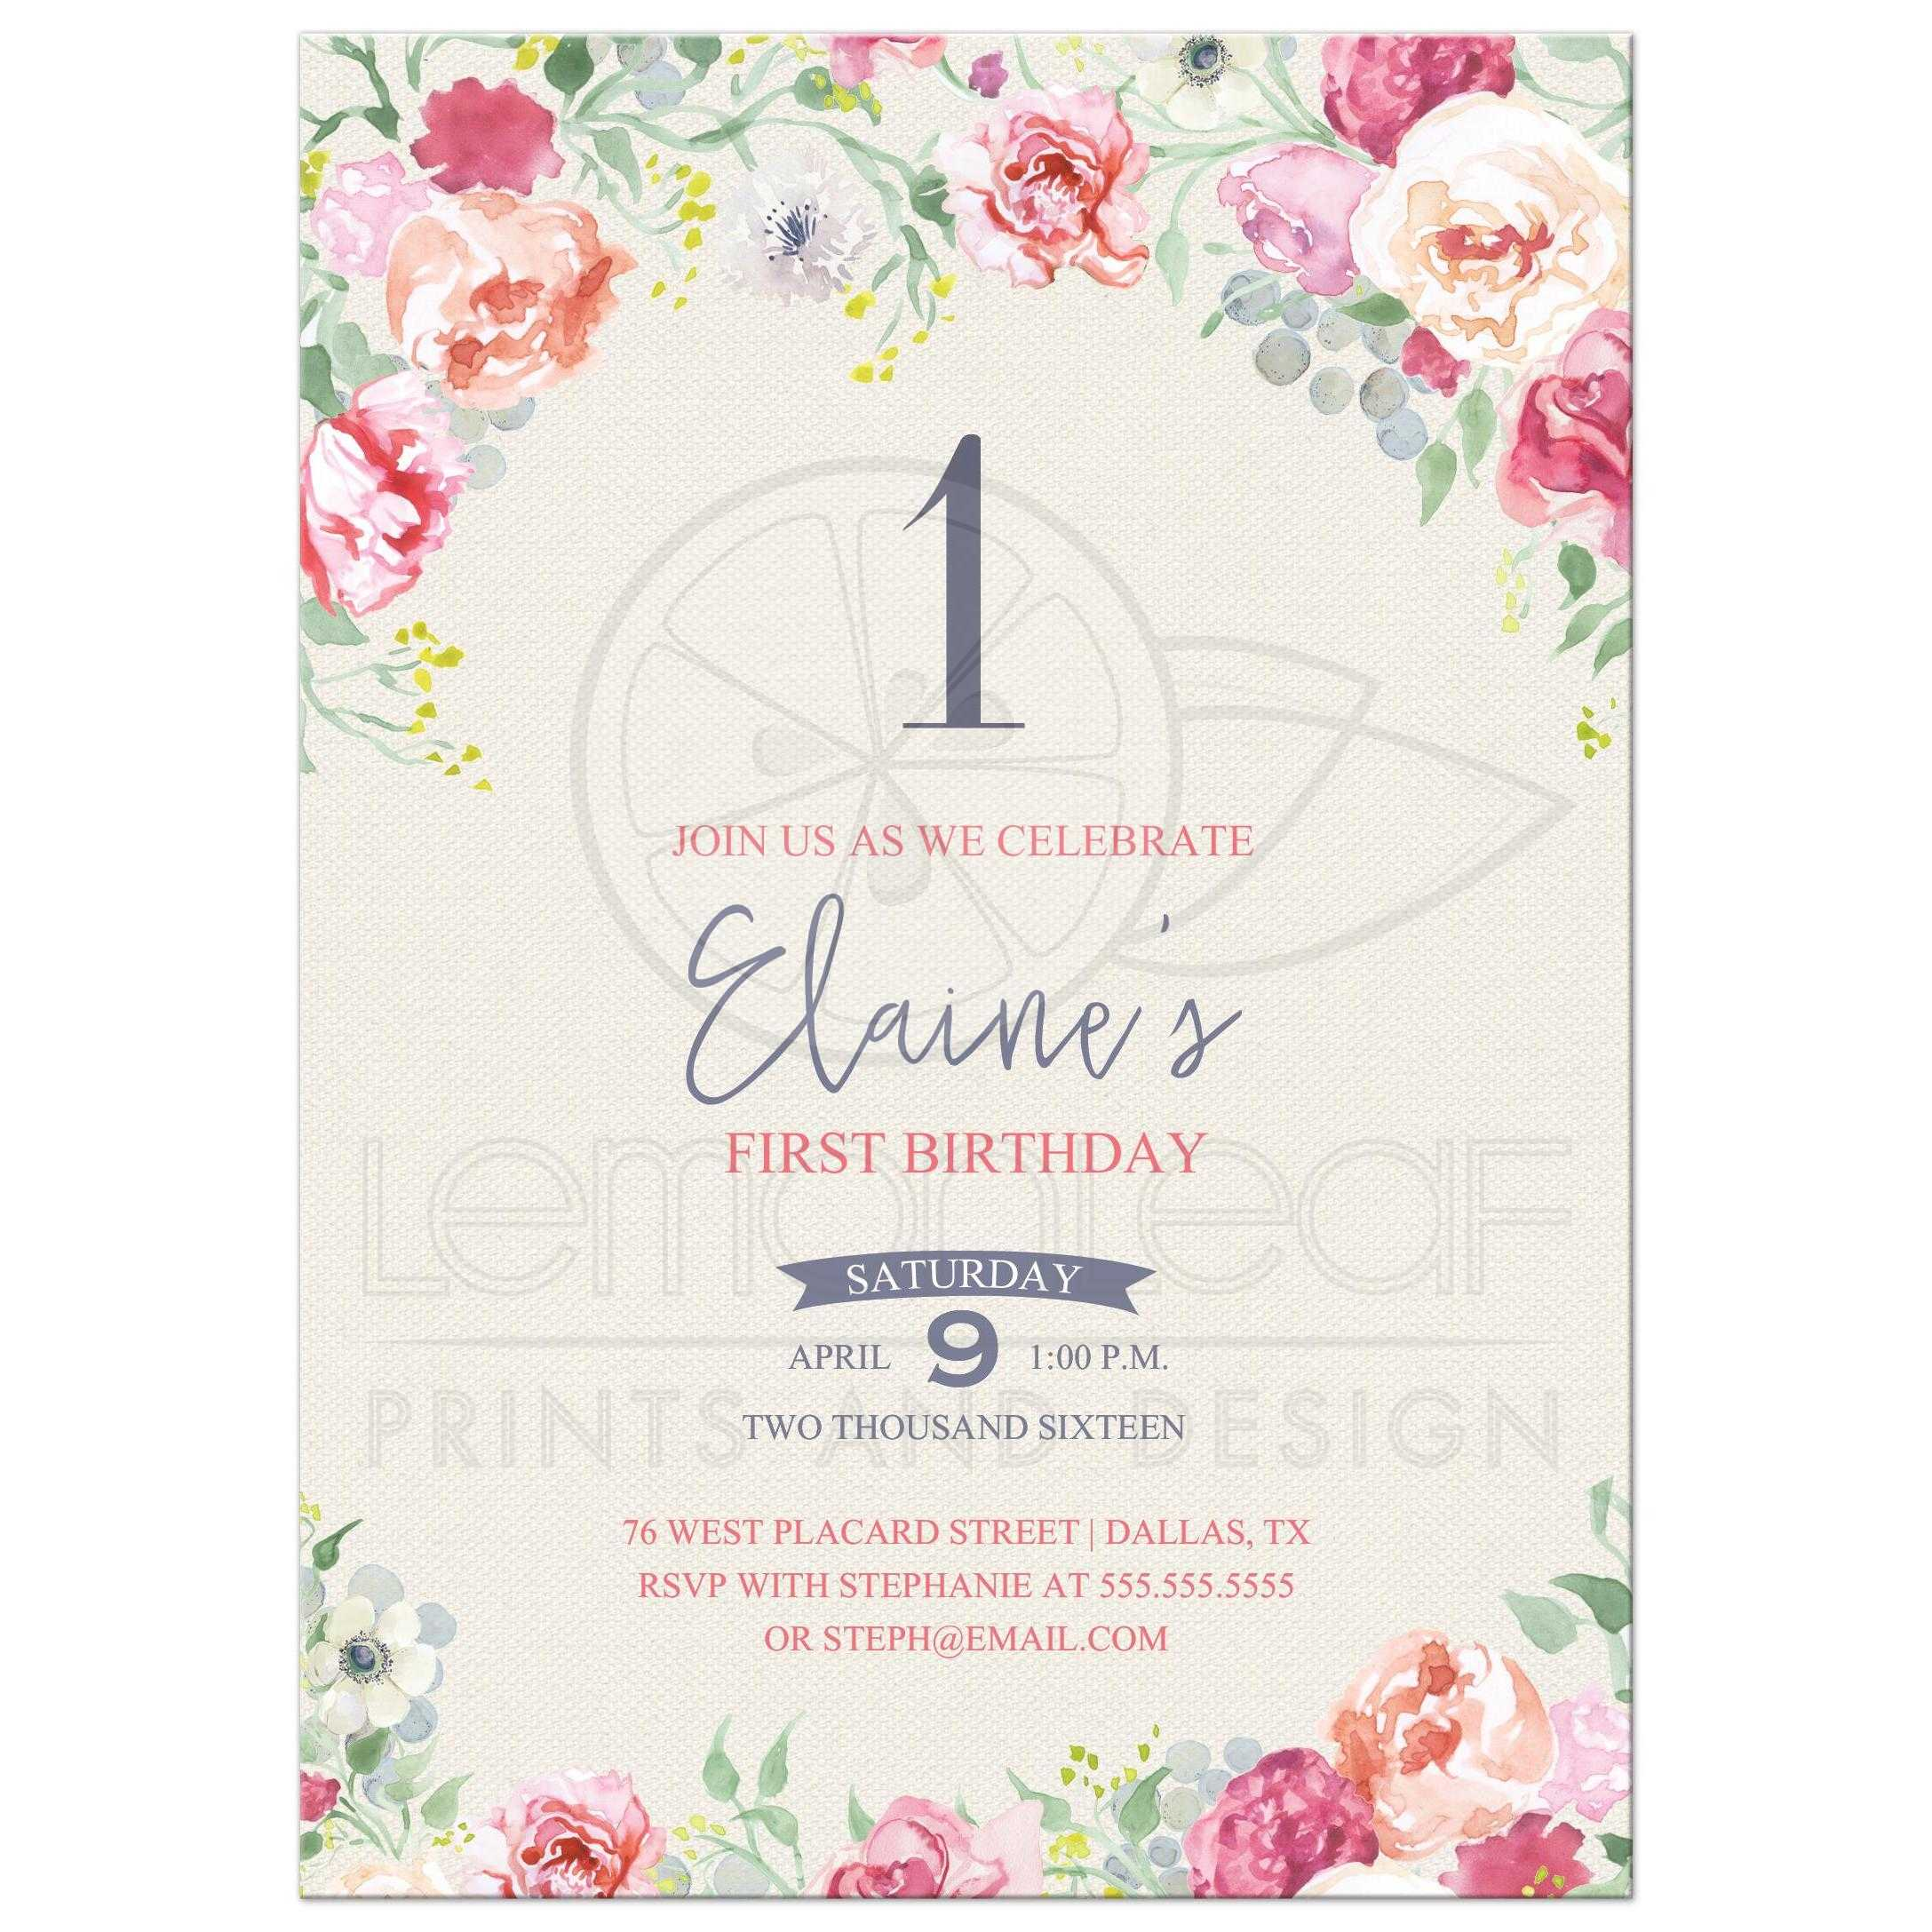 First birthday invitation pink and purple watercolor flowers watercolor floral first birthday party invitation stopboris Gallery